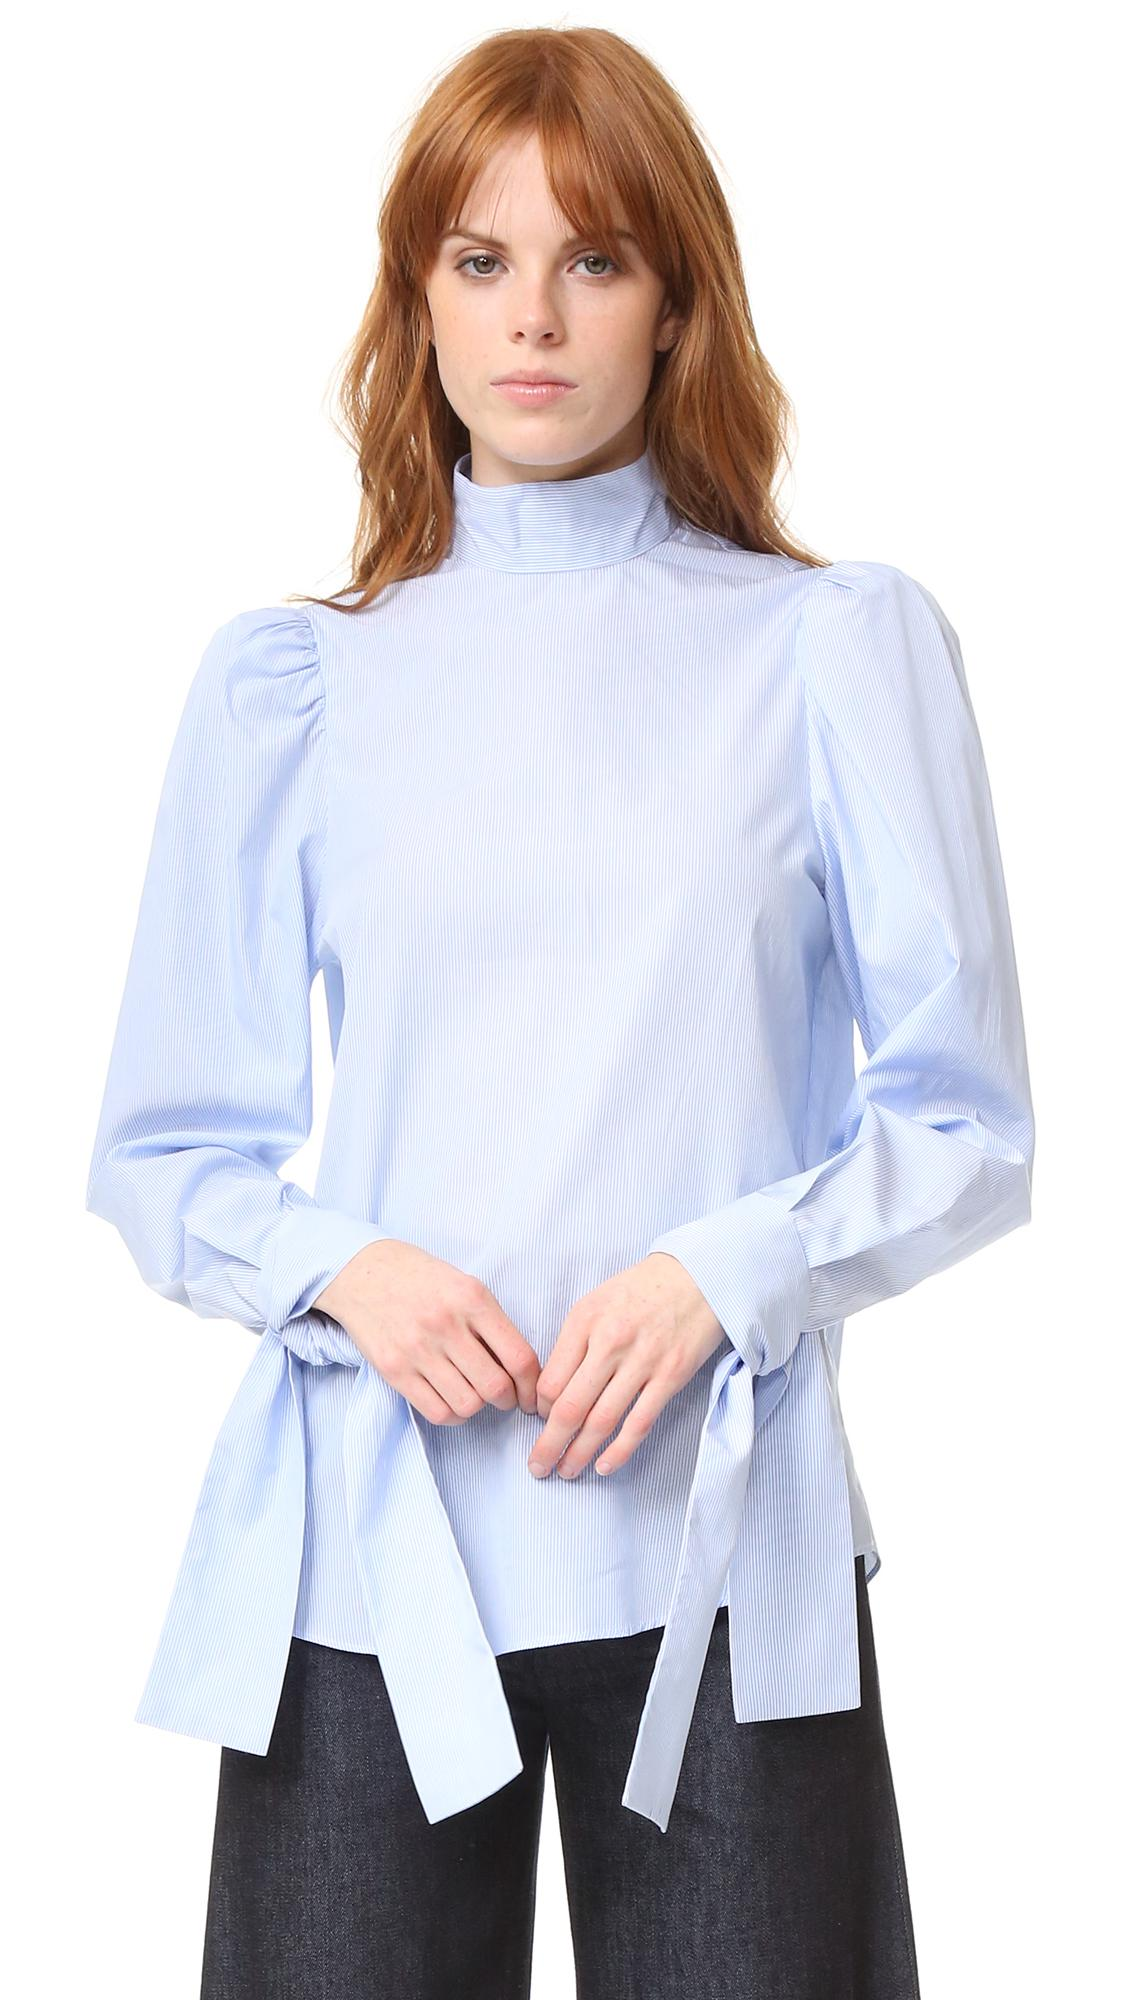 Women S Turtleneck Shirts